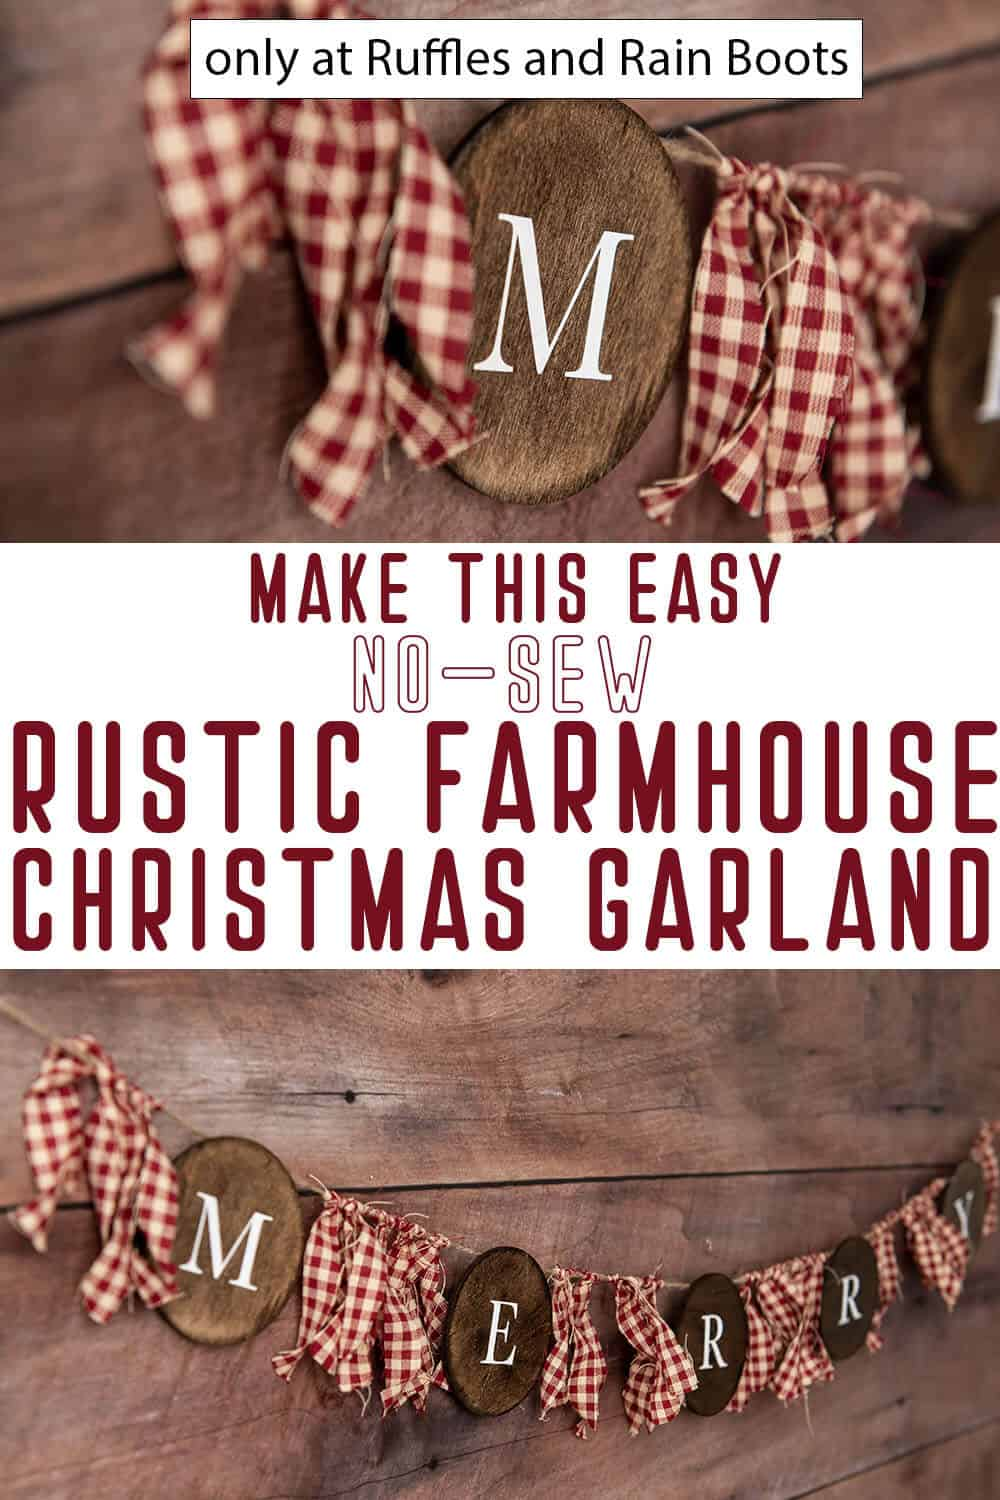 easy christmas craft holiday farmhouse garland with text which reads make this easy no-sew rustic farmhouse christmas garland